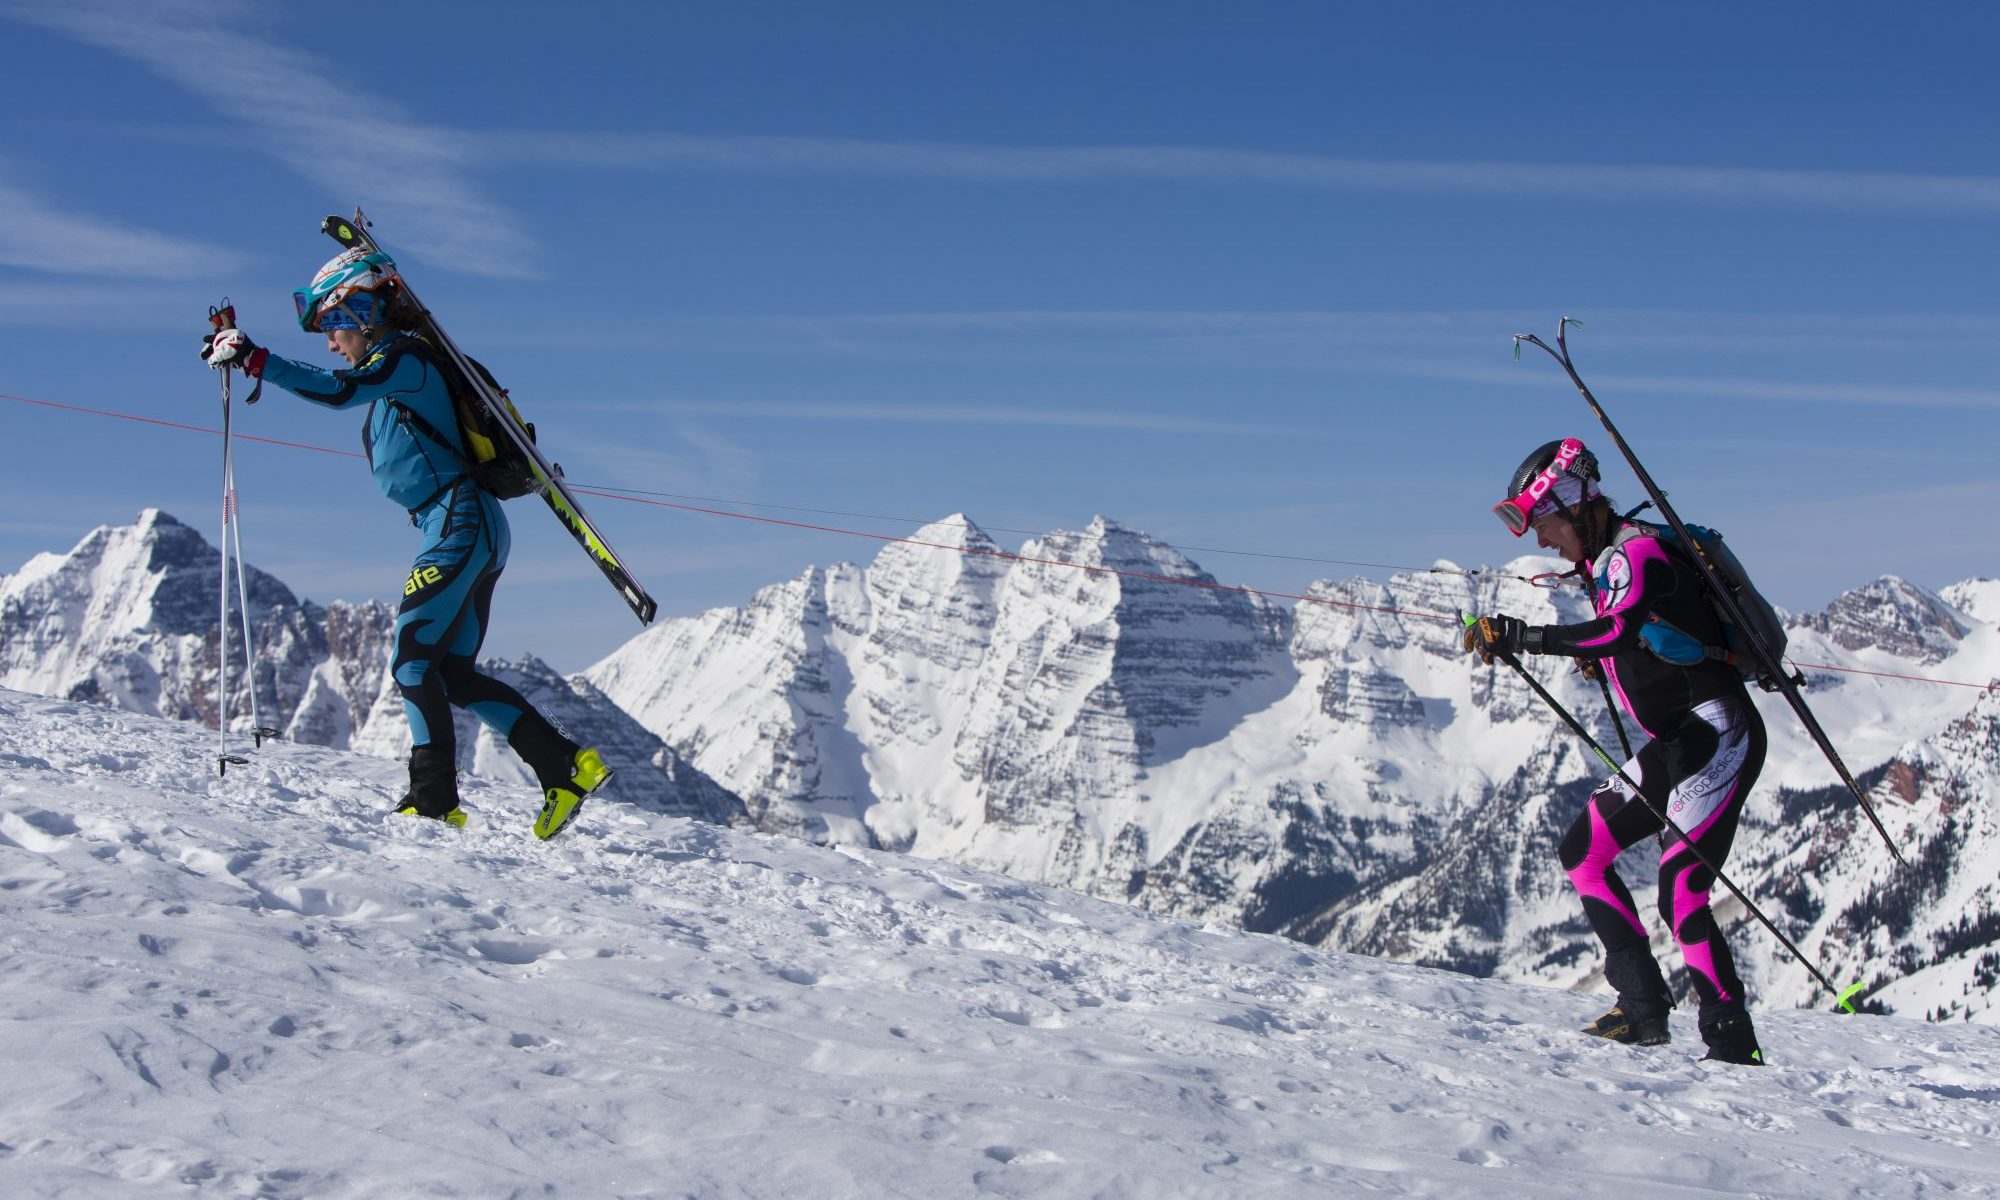 Audi Power of Four Ski Mountaineering Race Mar. 2-3 - New United States Ski Mountaineering Association National Championship. Photo courtesy of Aspen Skiing Company.